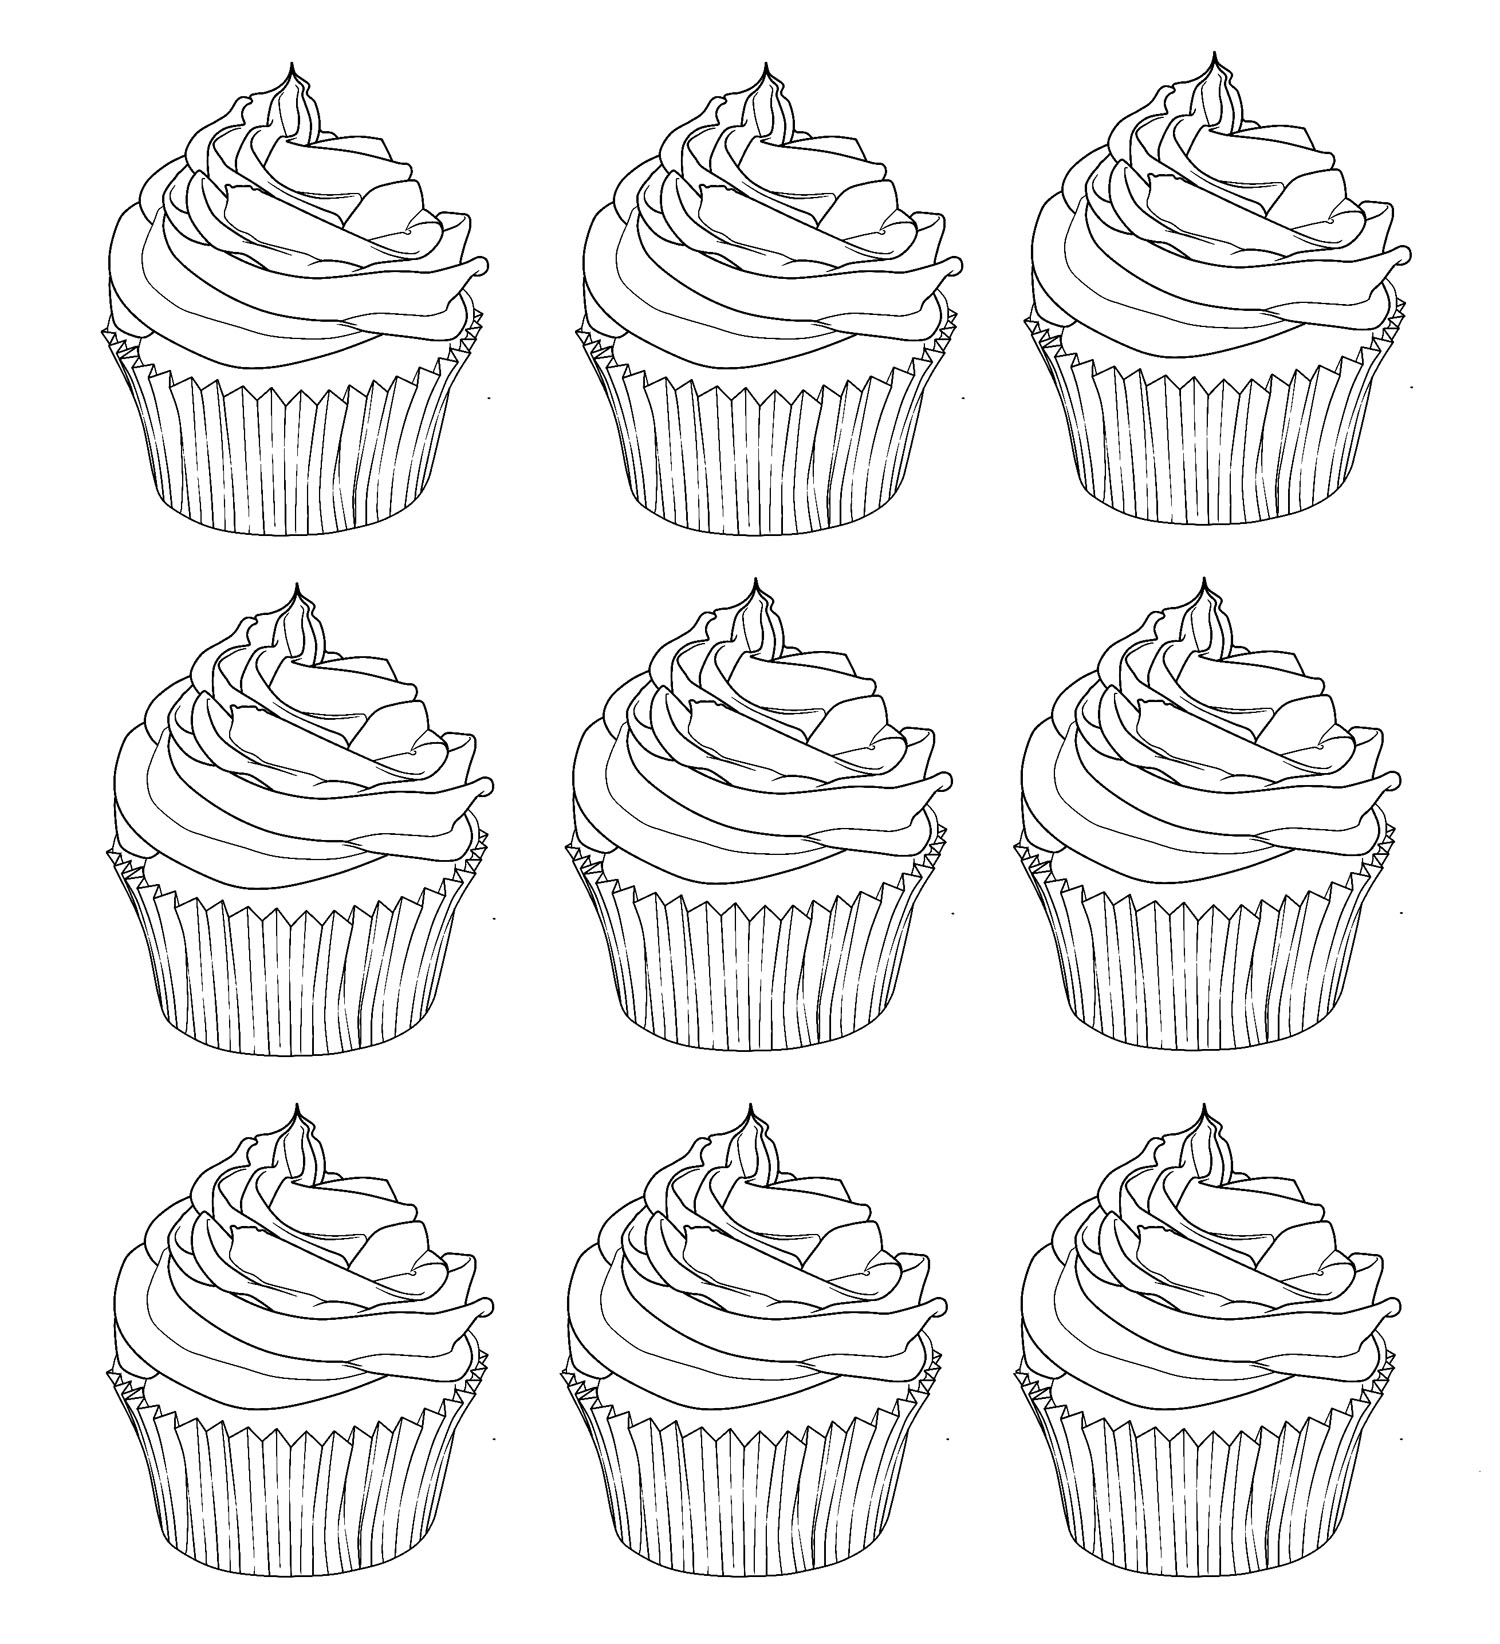 Cup cakes 44626